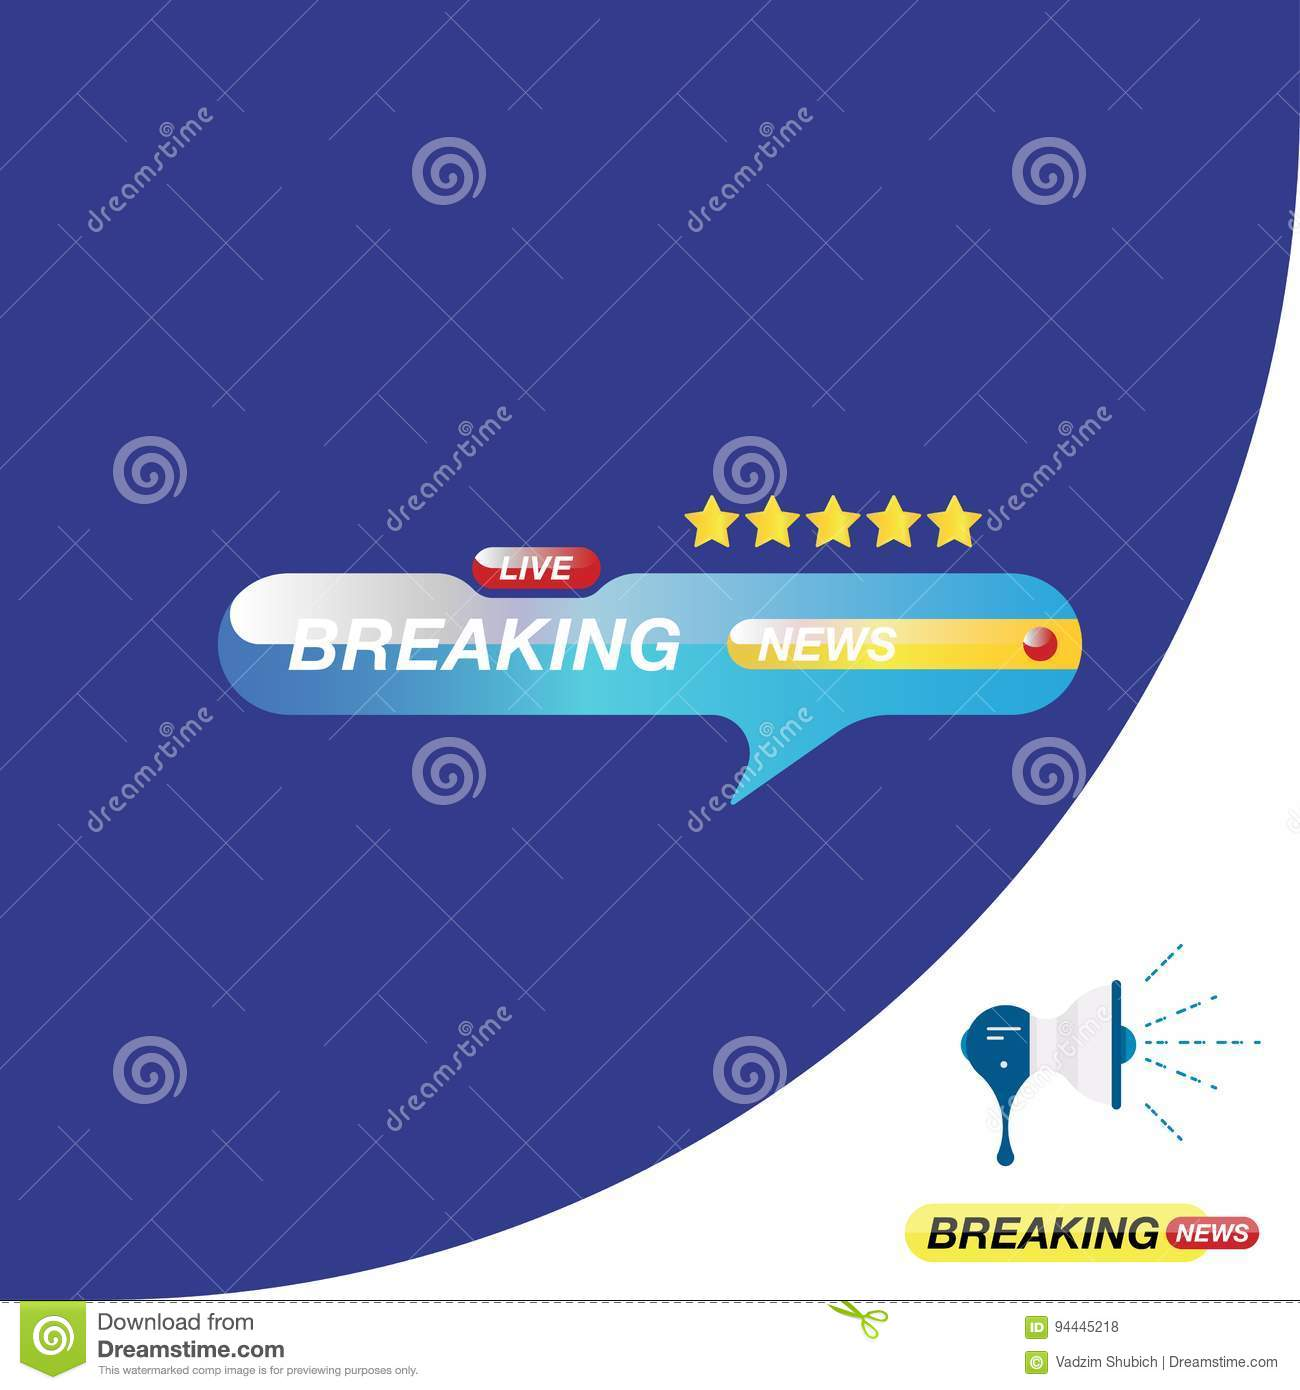 Breaking News Icon For Journalism Of TV Channels And A Loudspeaker On The Background Flat Illustration EPS 10